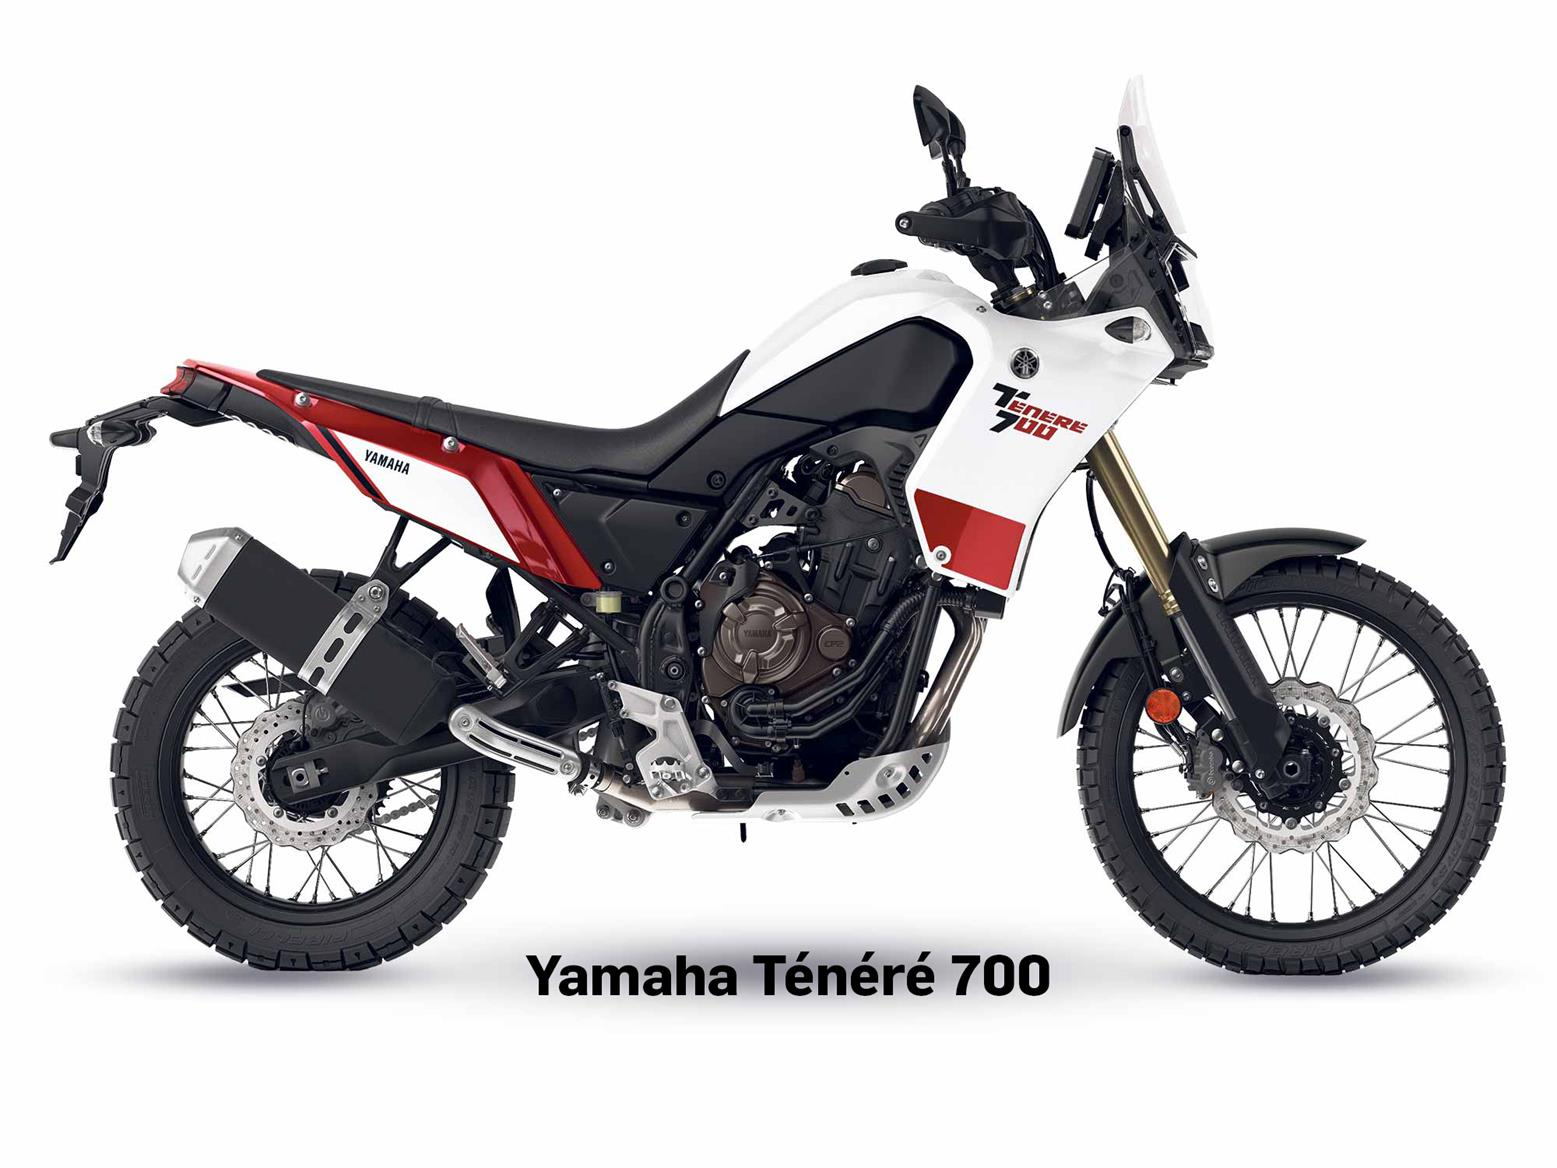 Read MCN's expert Yamaha Tenere 700 long term test review here